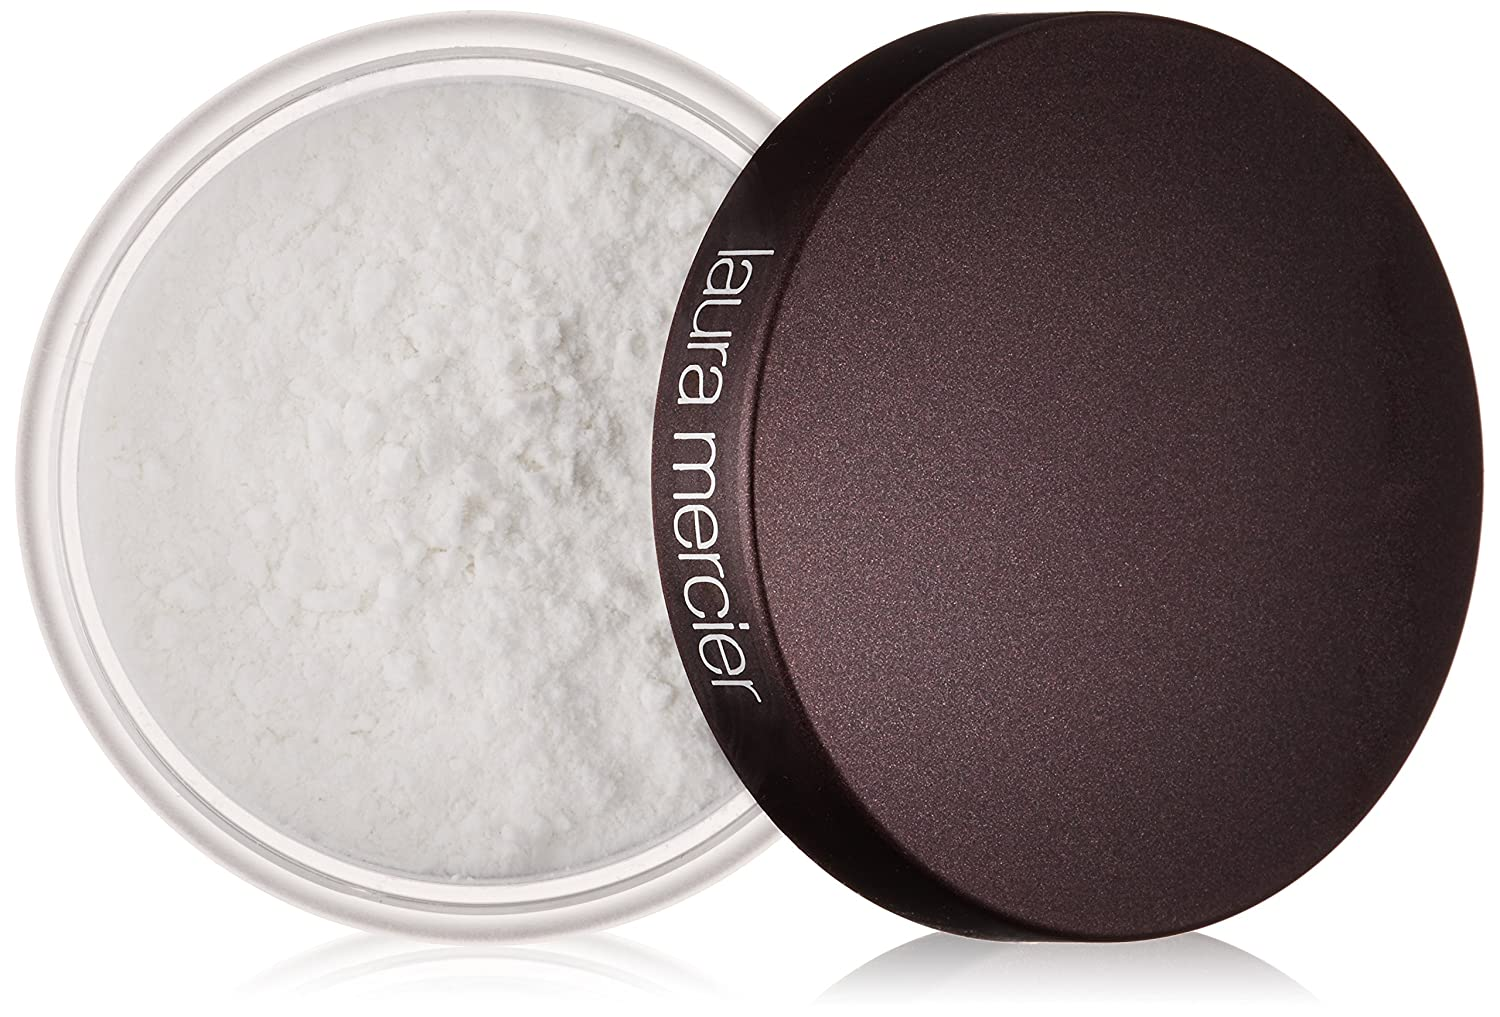 Laura Mercier Secret Brightening Best Setting Powder for Dry Skin